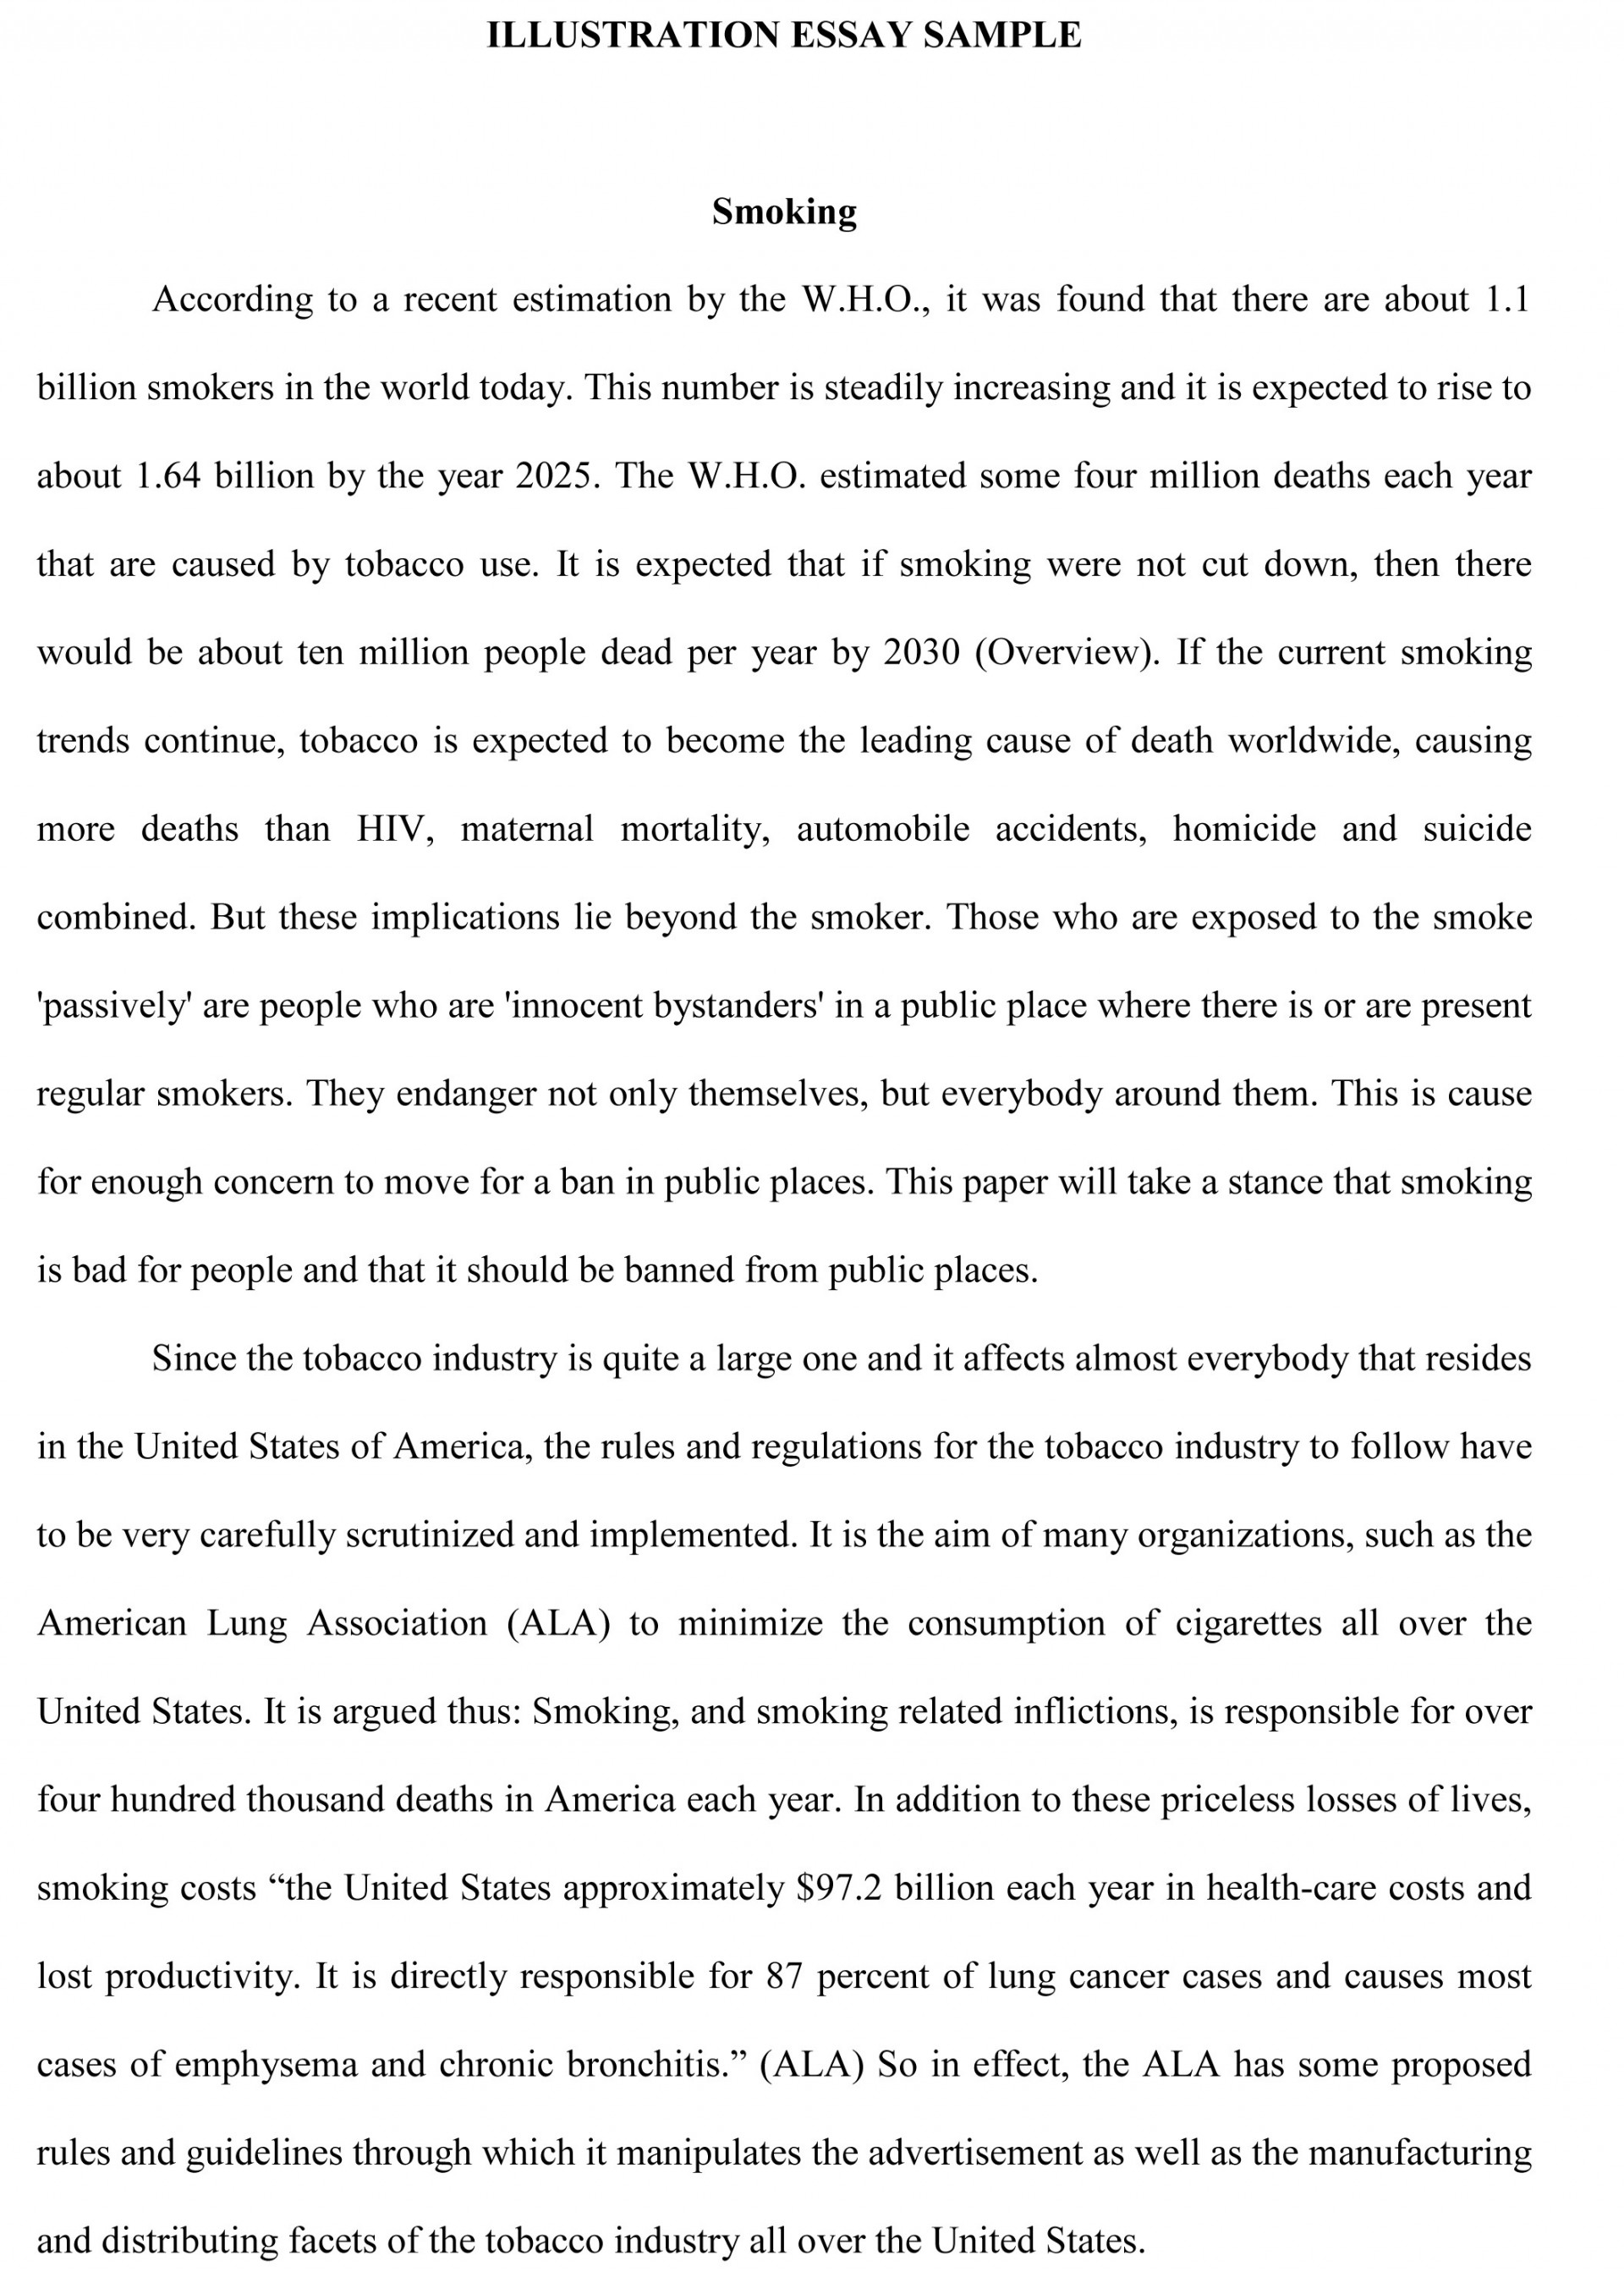 015 Examplend Illustration Essay Topics Sample Illustrative Constructive How To Right Marvelous A Write History Ib Introduction Example College Fast 1920